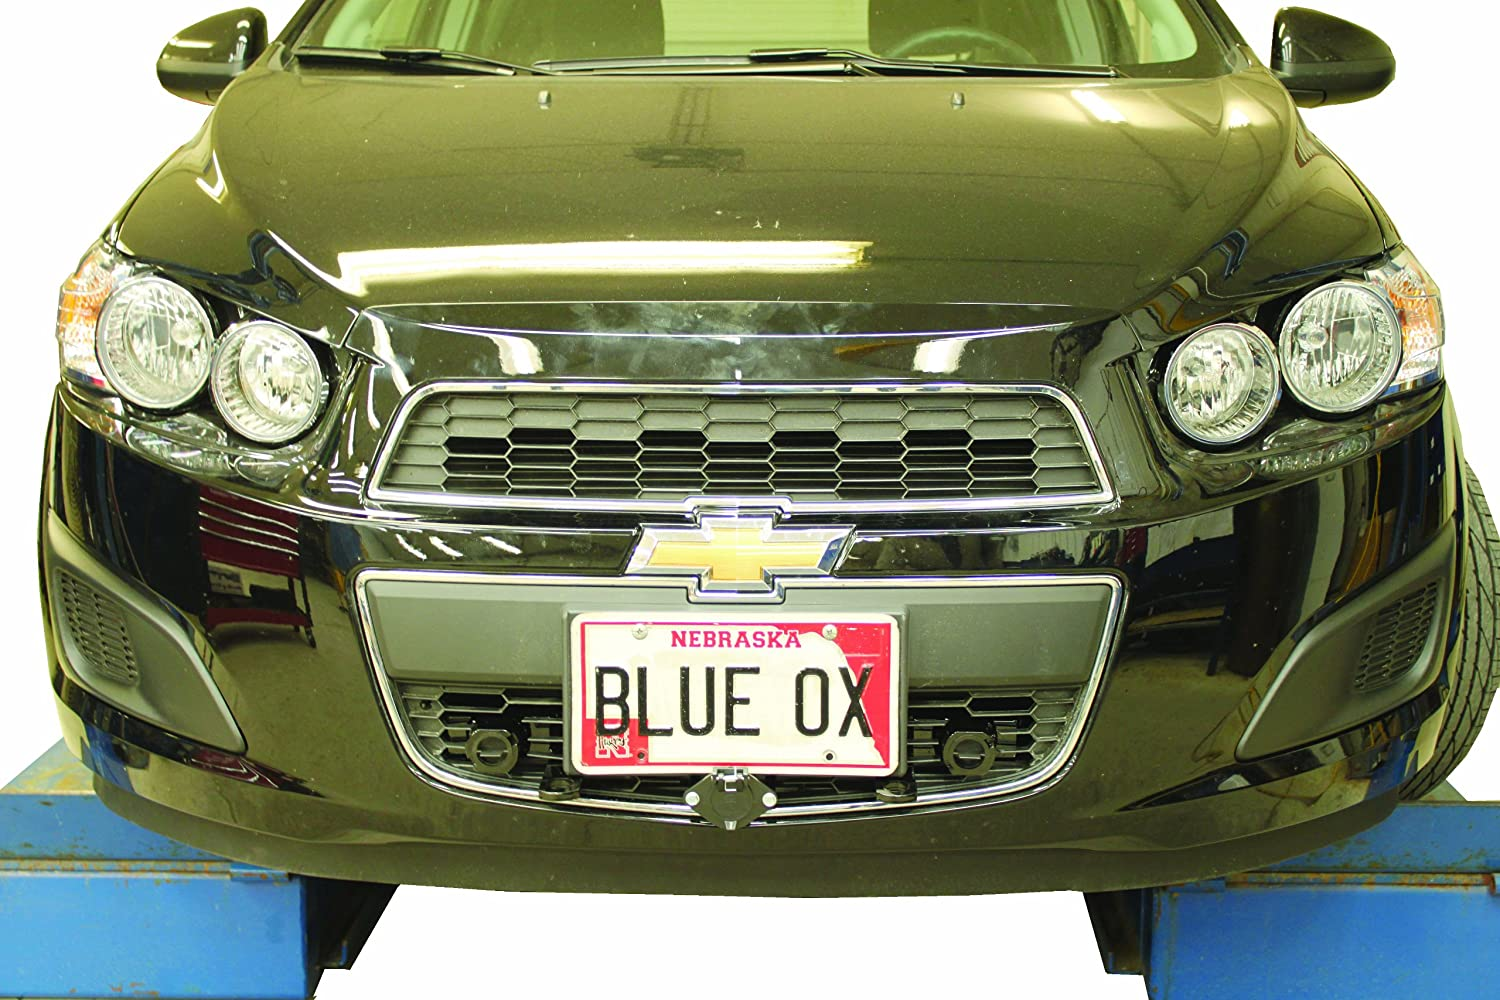 Chevrolet Sonic Repair Manual: Rear Bumper Fascia Tow Eye Access Hole Cover Replacement